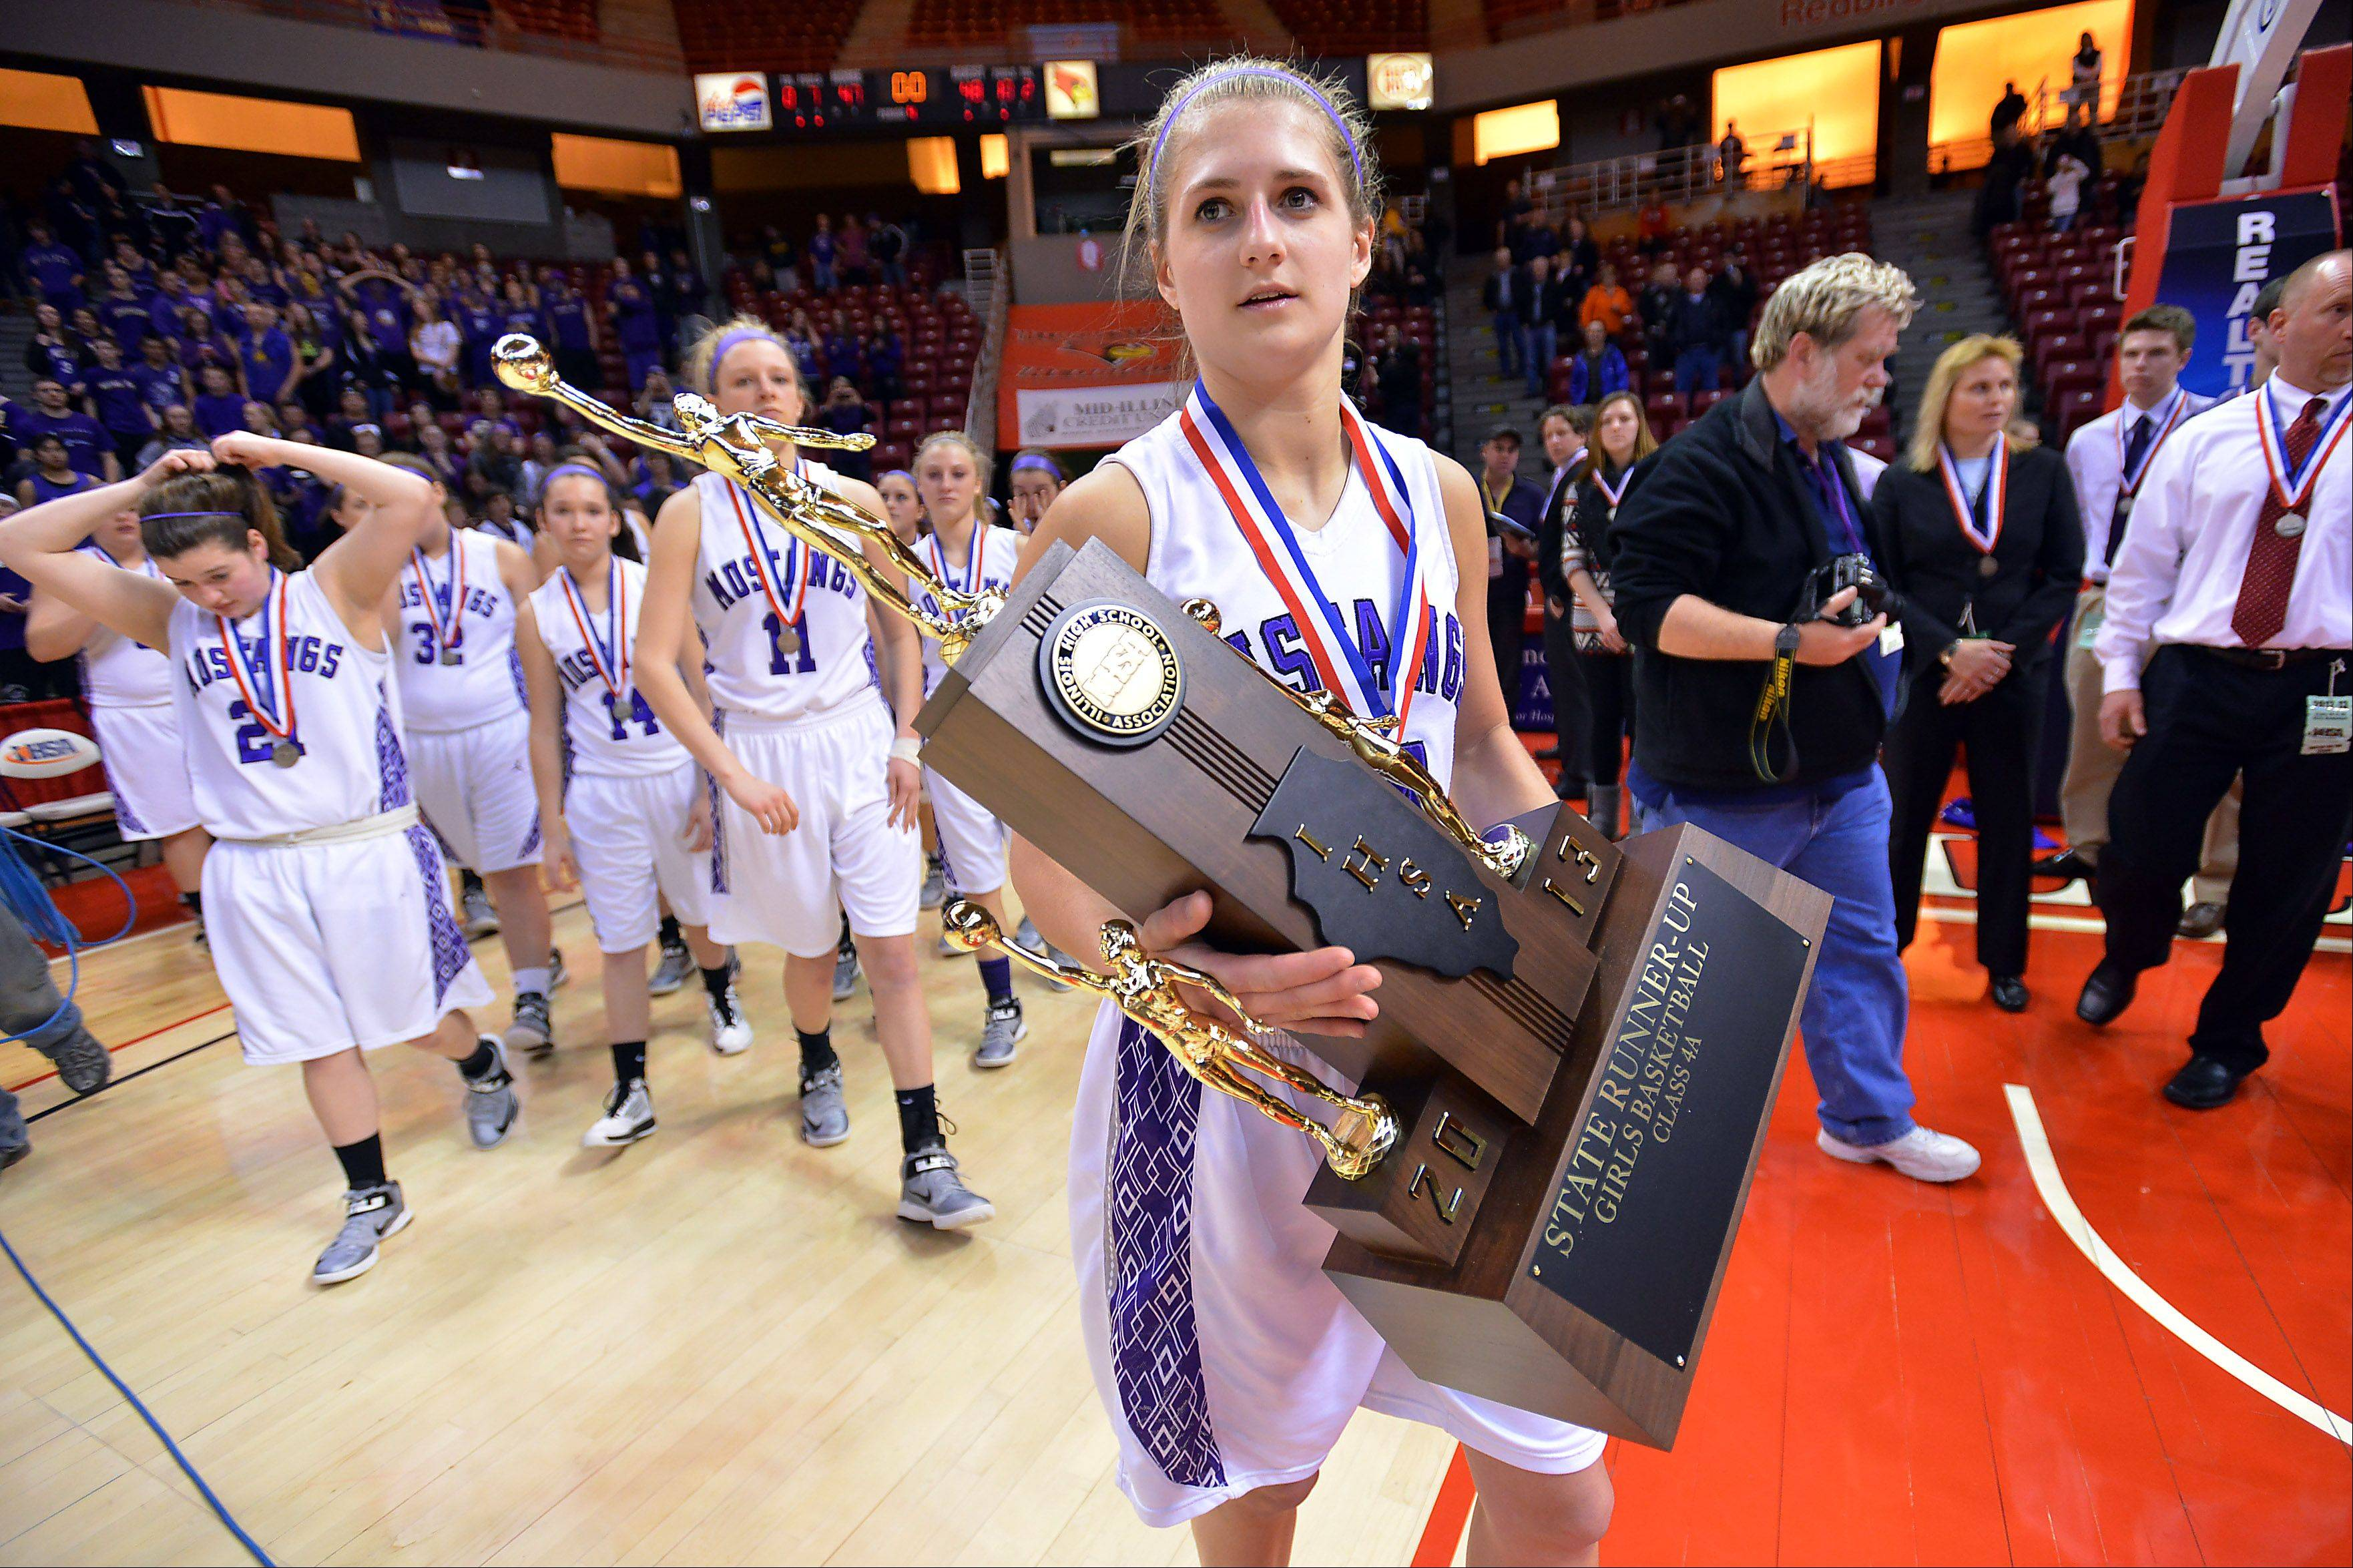 Rolling Meadows Alexis Glasgow carries the Class 4A runner-up trophy after the Mustangs lost at the buzzer to Marian Catholic in the Class 4A championship game Saturday.